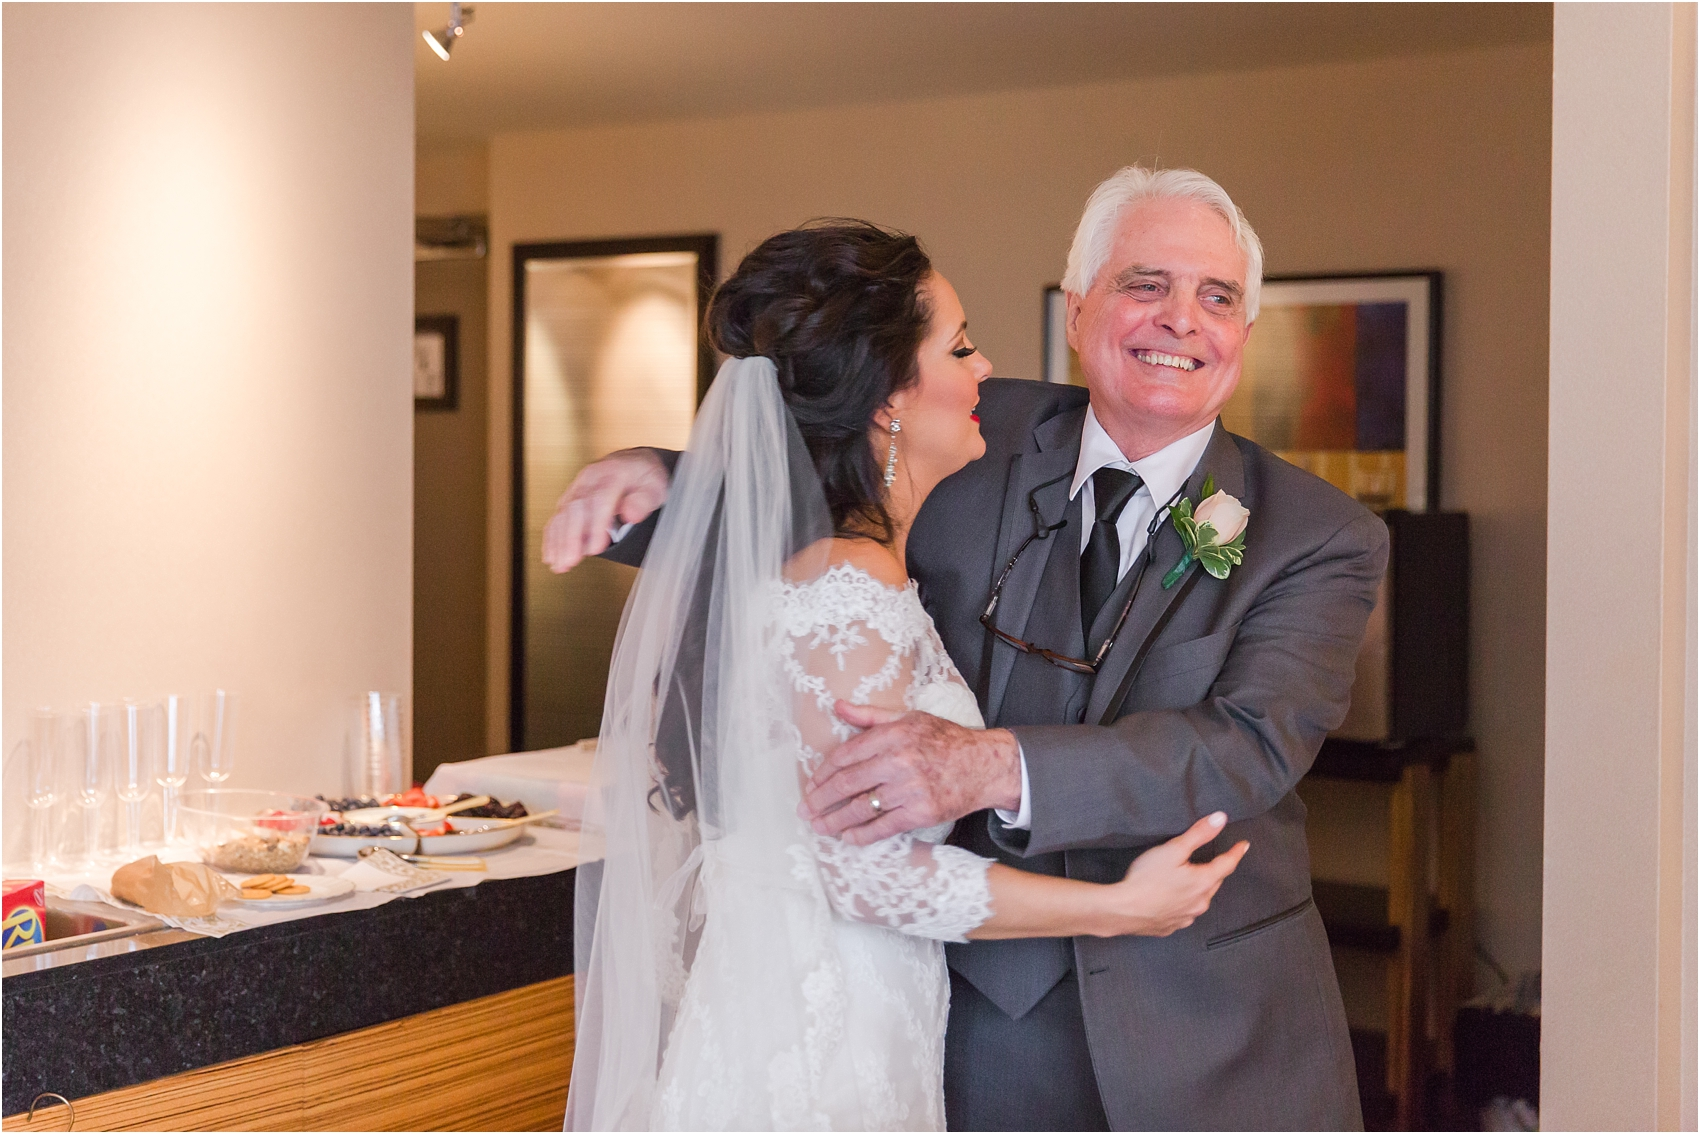 father-and-bride-share-emotional-first-look-on-wedding-day-photos-in-detroit-michigan-by-courtney-carolyn-photography_0038.jpg